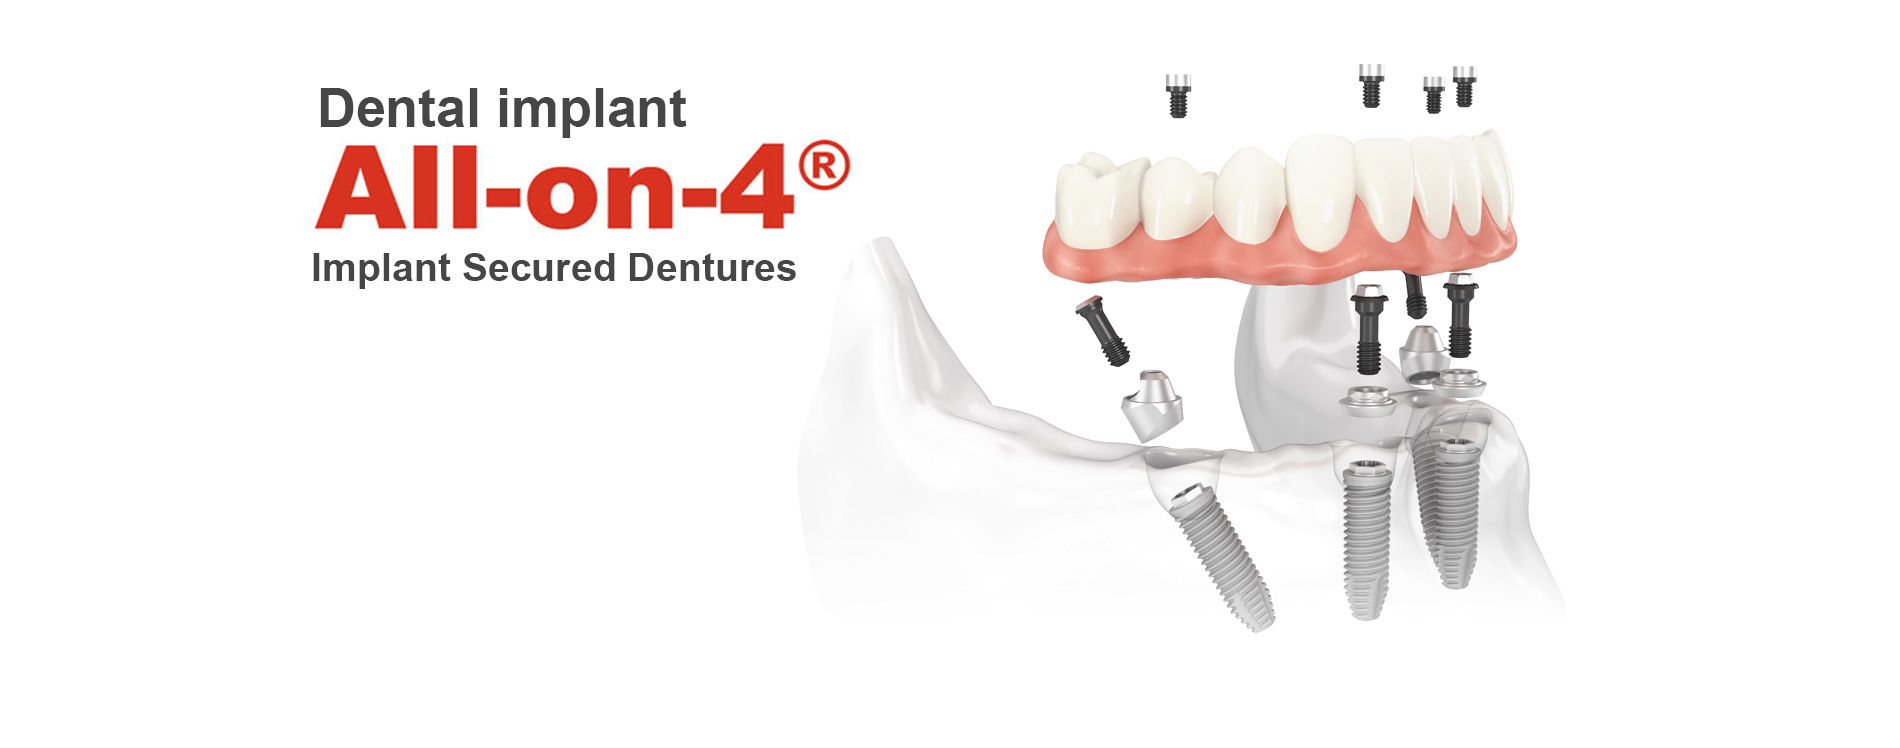 Dental implant all-on-4